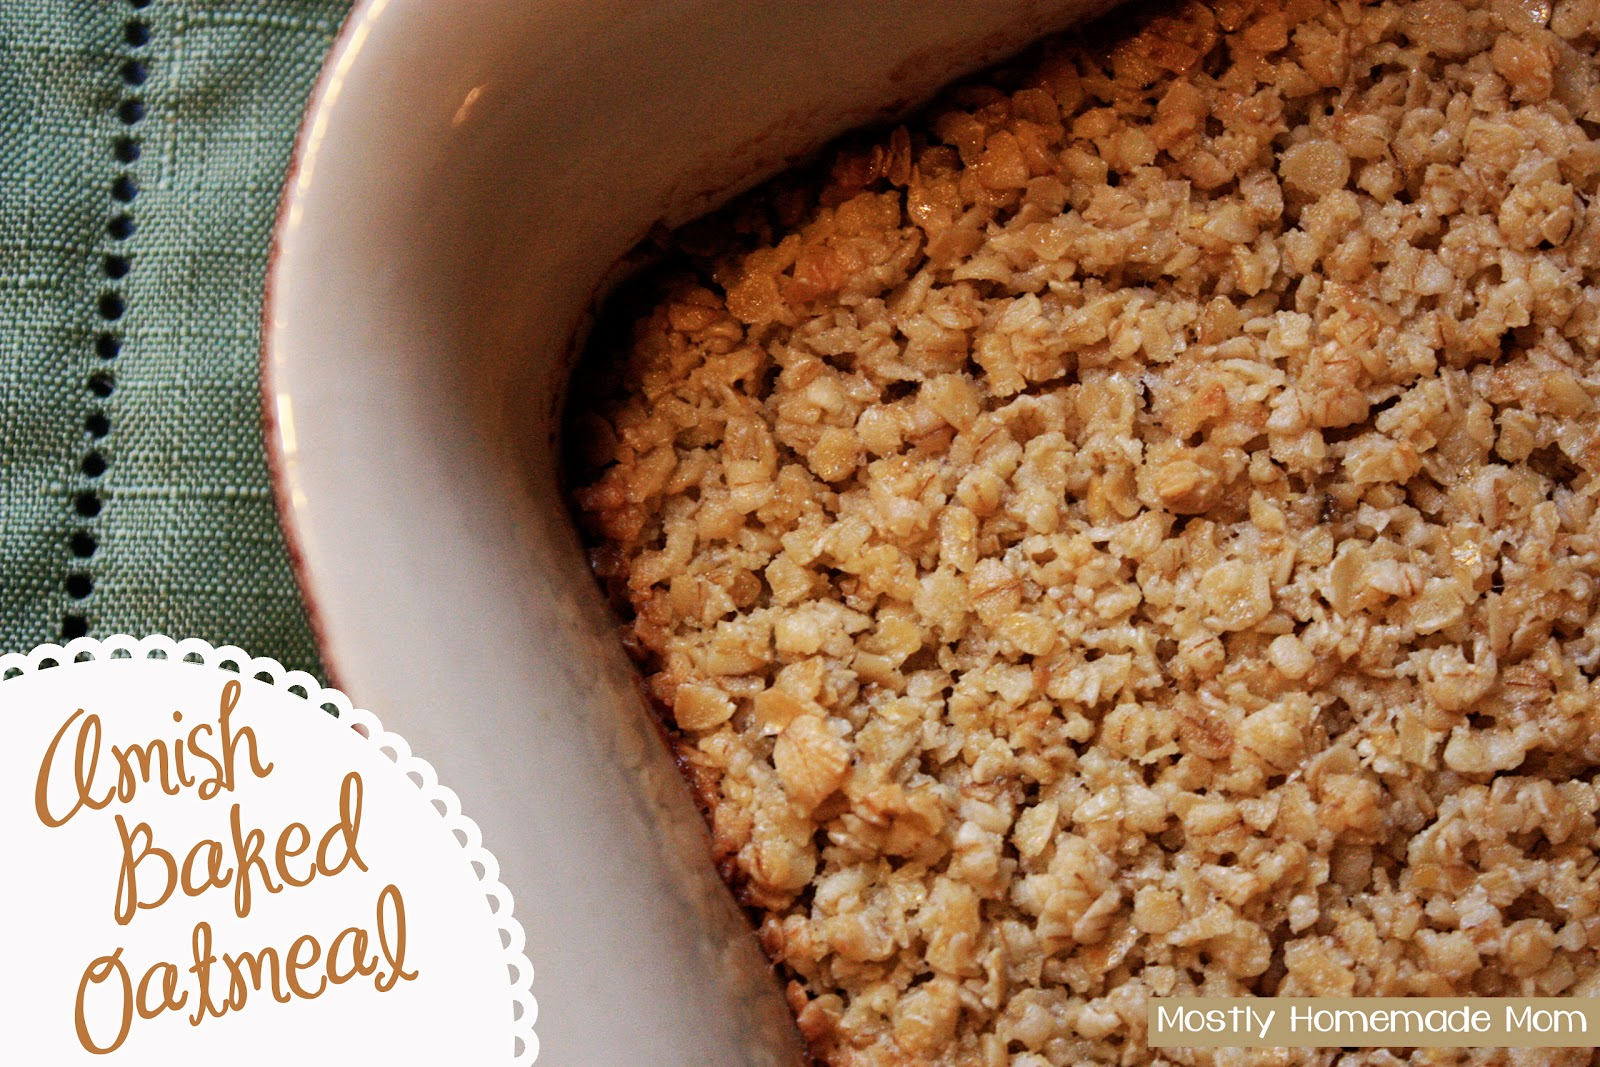 Amish Baked Oatmeal | Mostly Homemade Mom